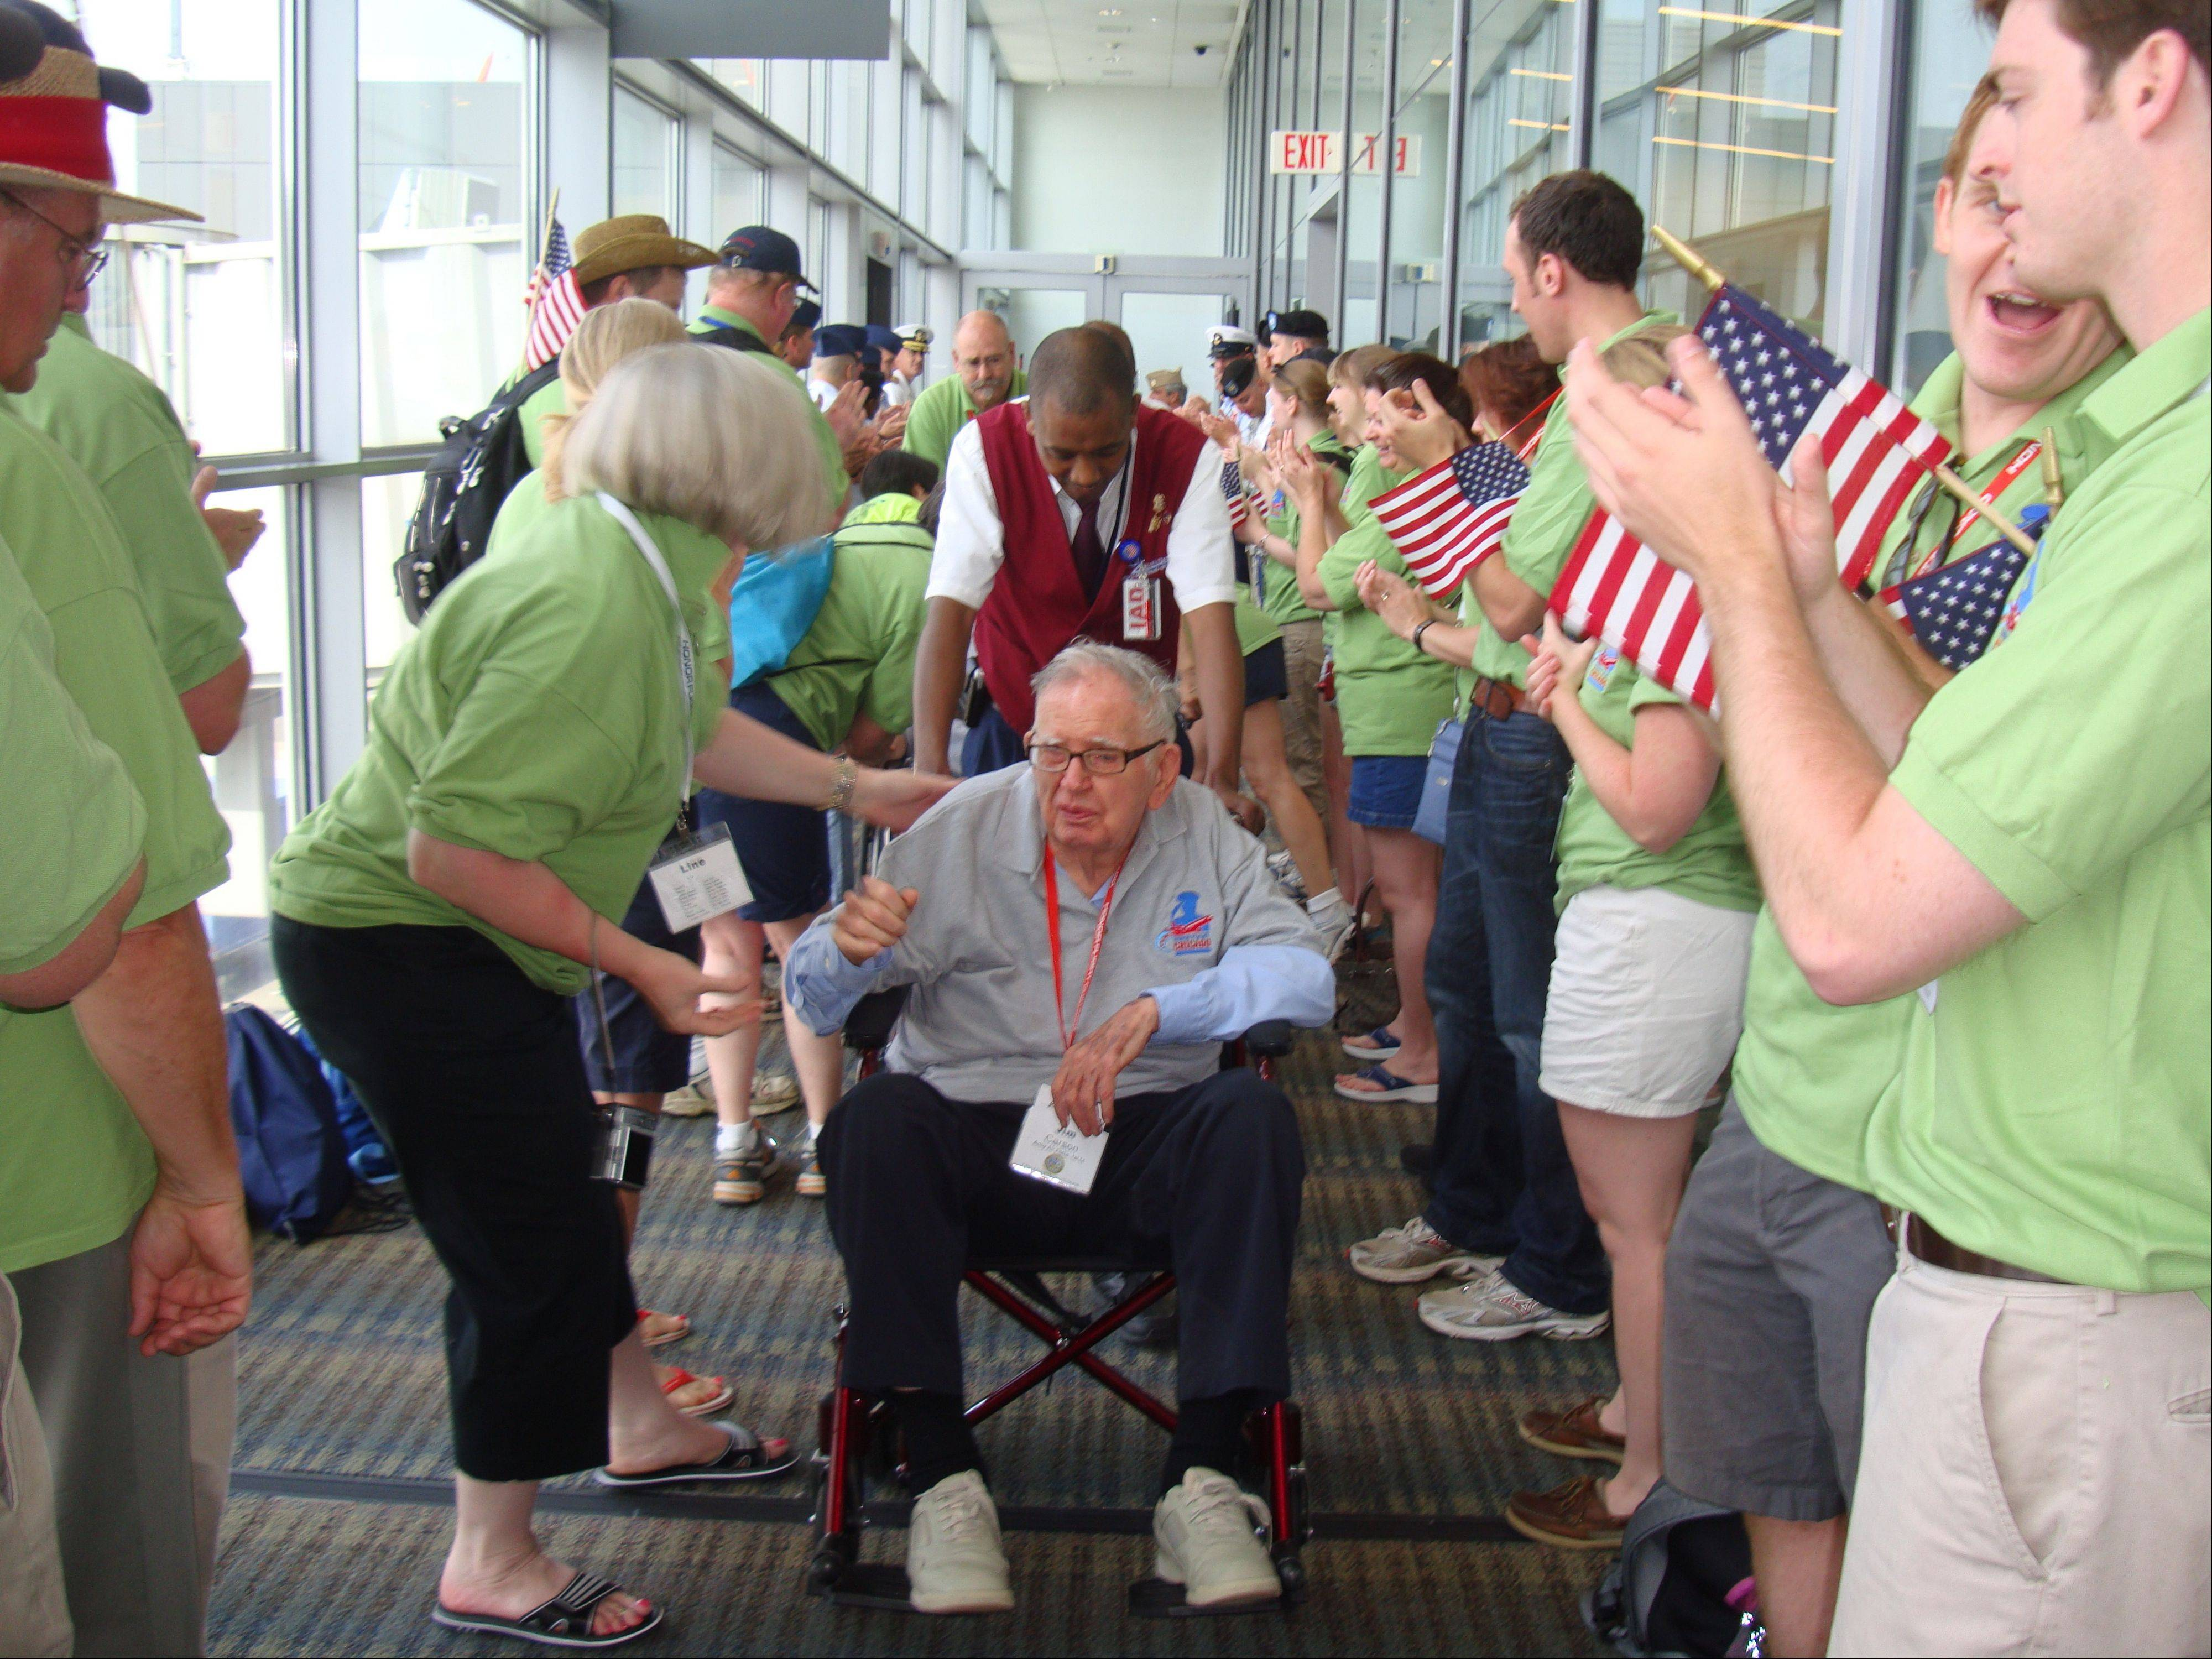 Volunteers cheer and wave flags for veterans like James Carson as they arrive at airports on both ends of the Honor Flight Chicago trips to Washington, D.C.